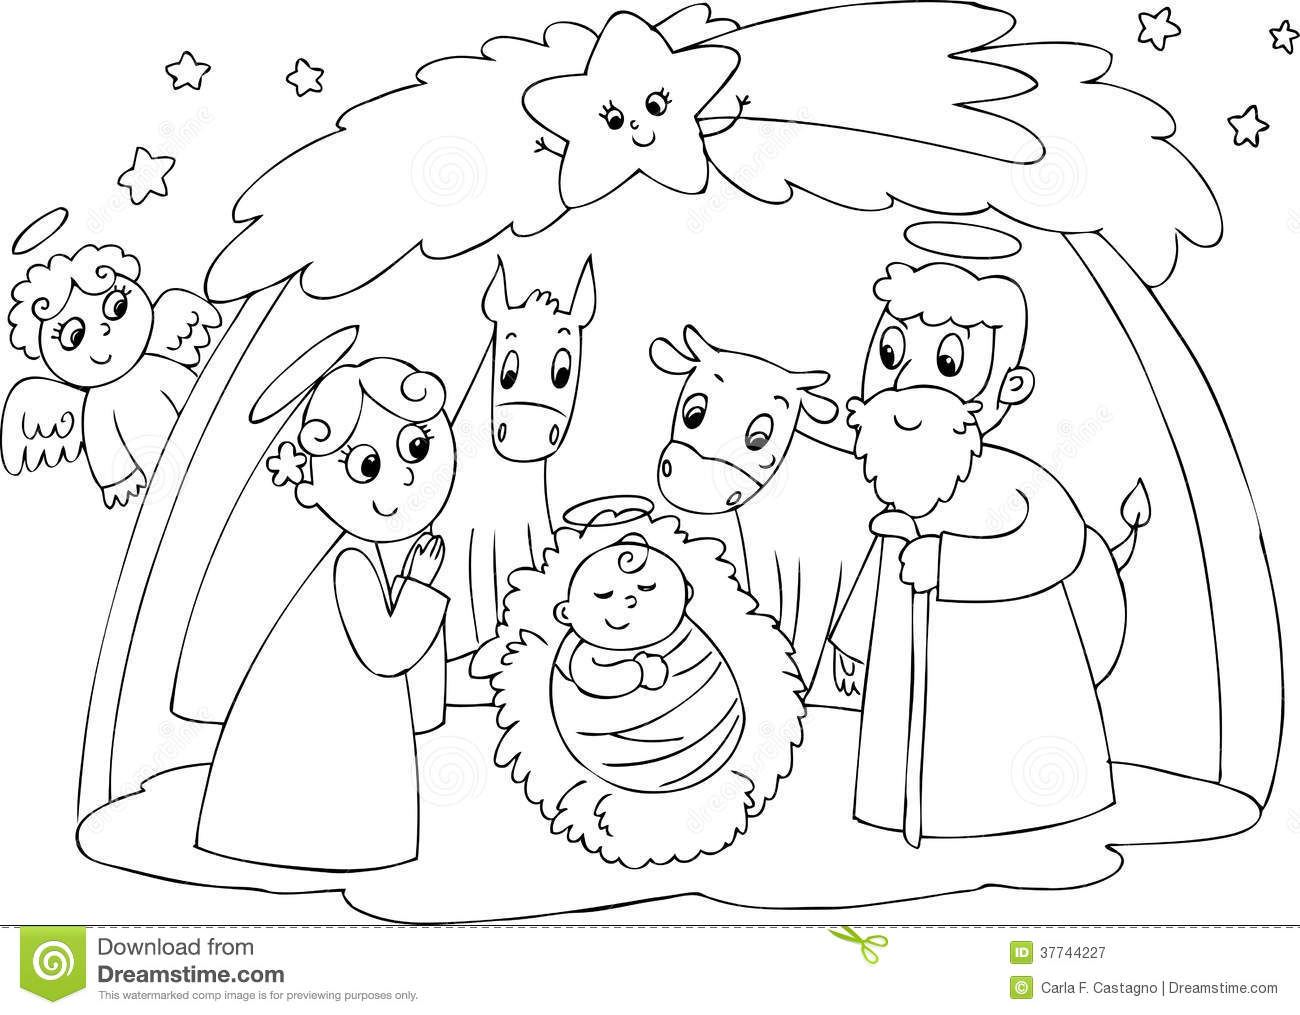 Joseph Coloring Pages Pdf : Pics of nativity joseph coloring page baby jesus